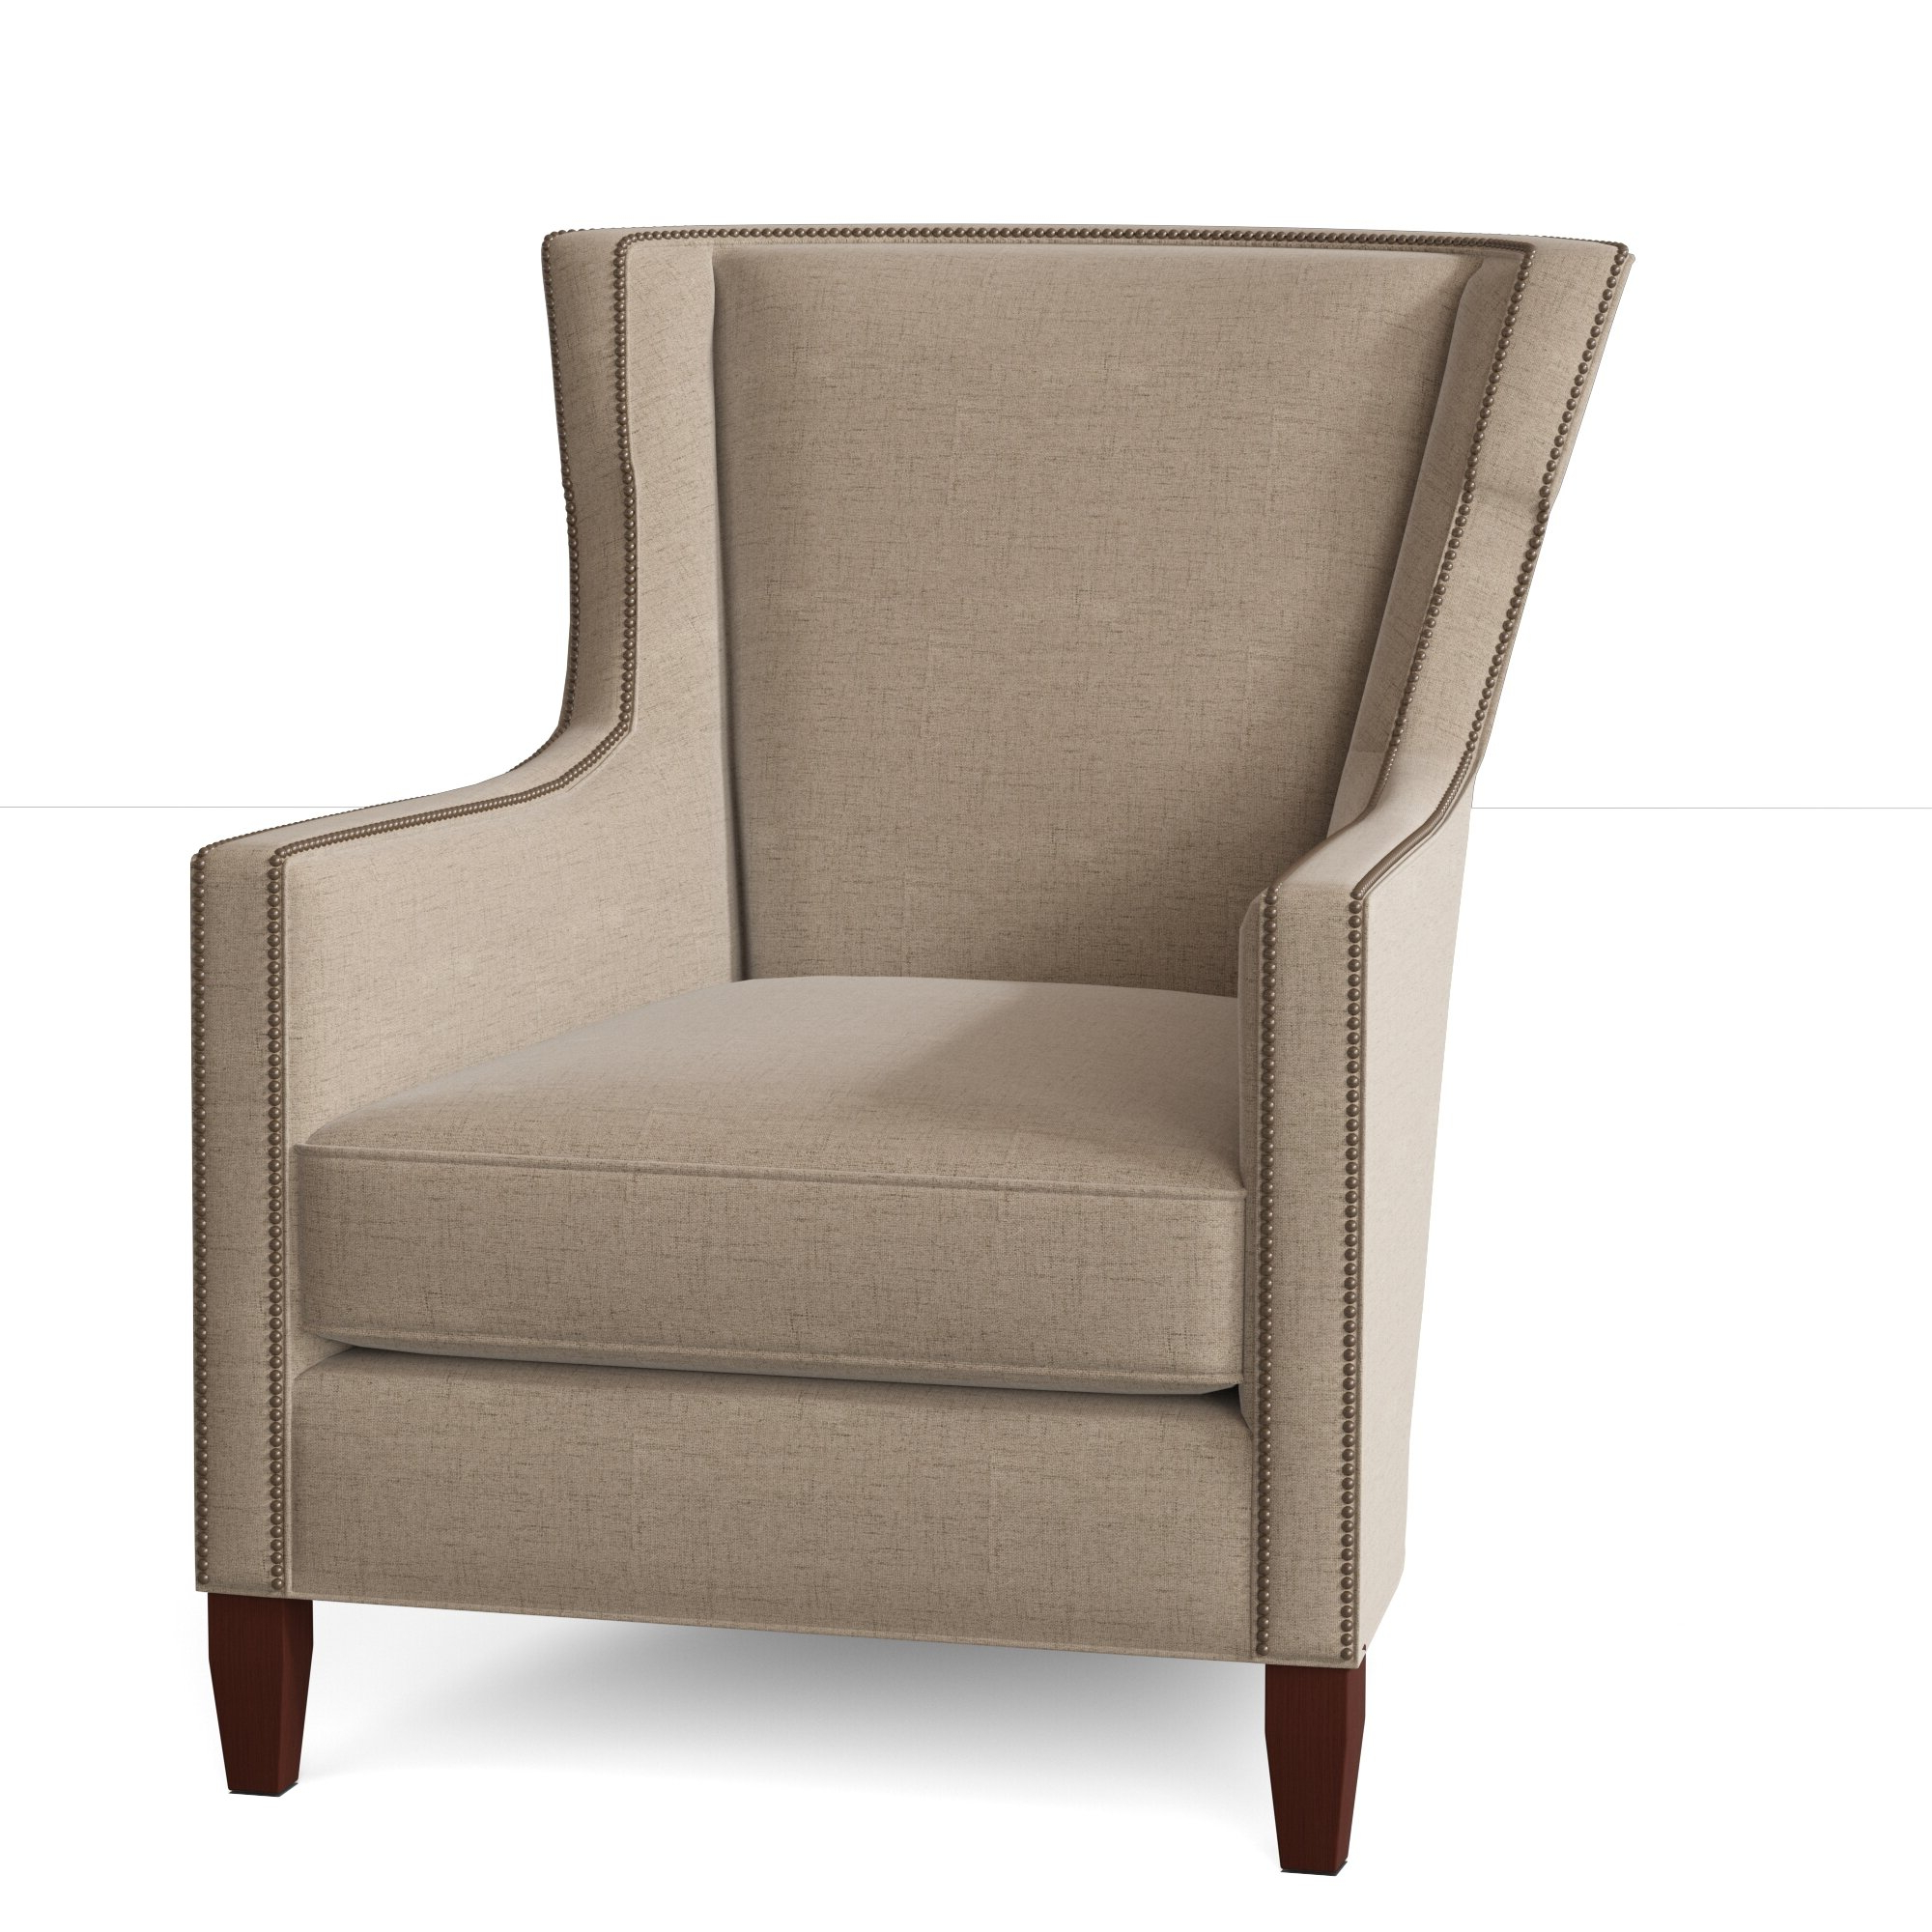 Famous Verbena Wingback Chair Intended For Sweetwater Wingback Chairs (View 9 of 20)